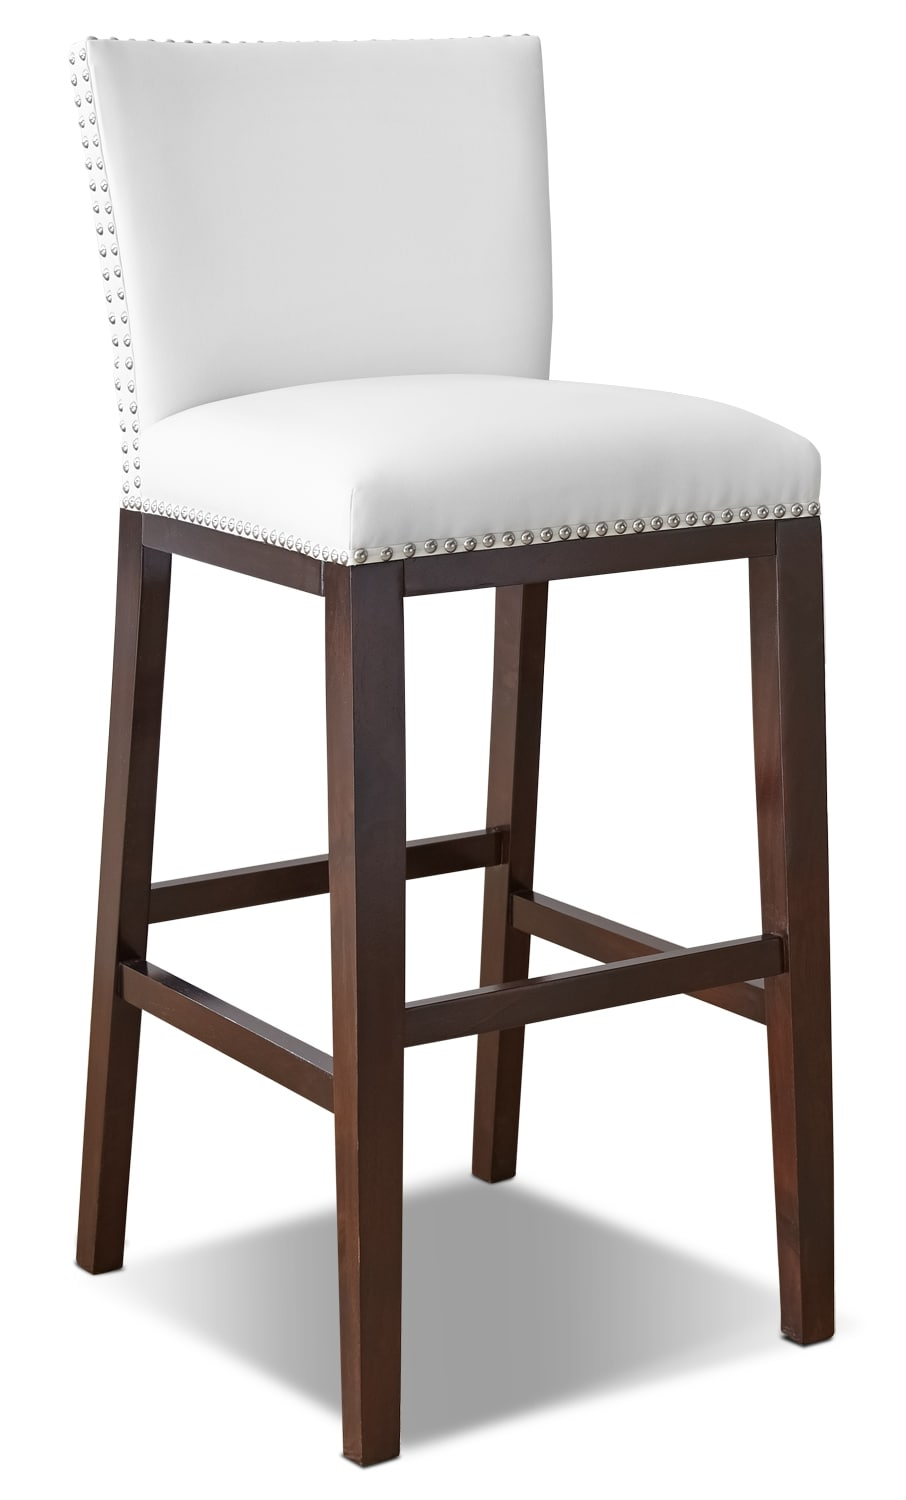 Tiffany Bar-Height Dining Chair – White